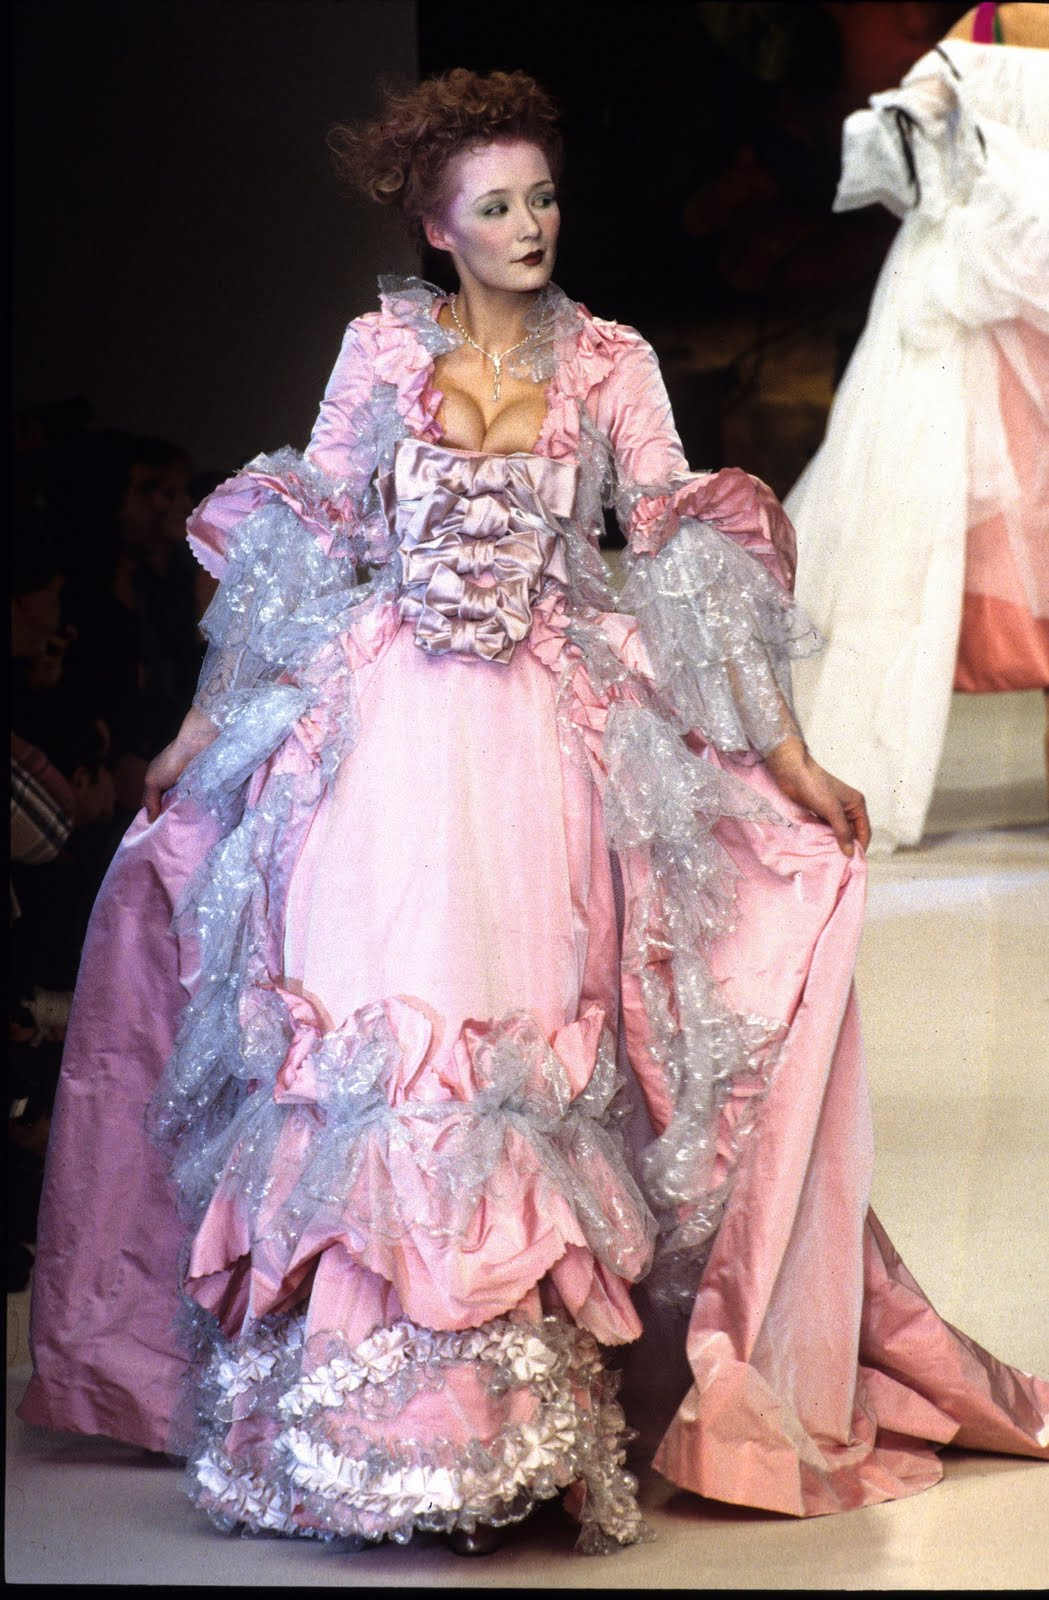 th century french women eighteenth century european dress essay  marie antoinette meets vivienne westwood the 18th century back in marie antoinette meets vivienne westwood the